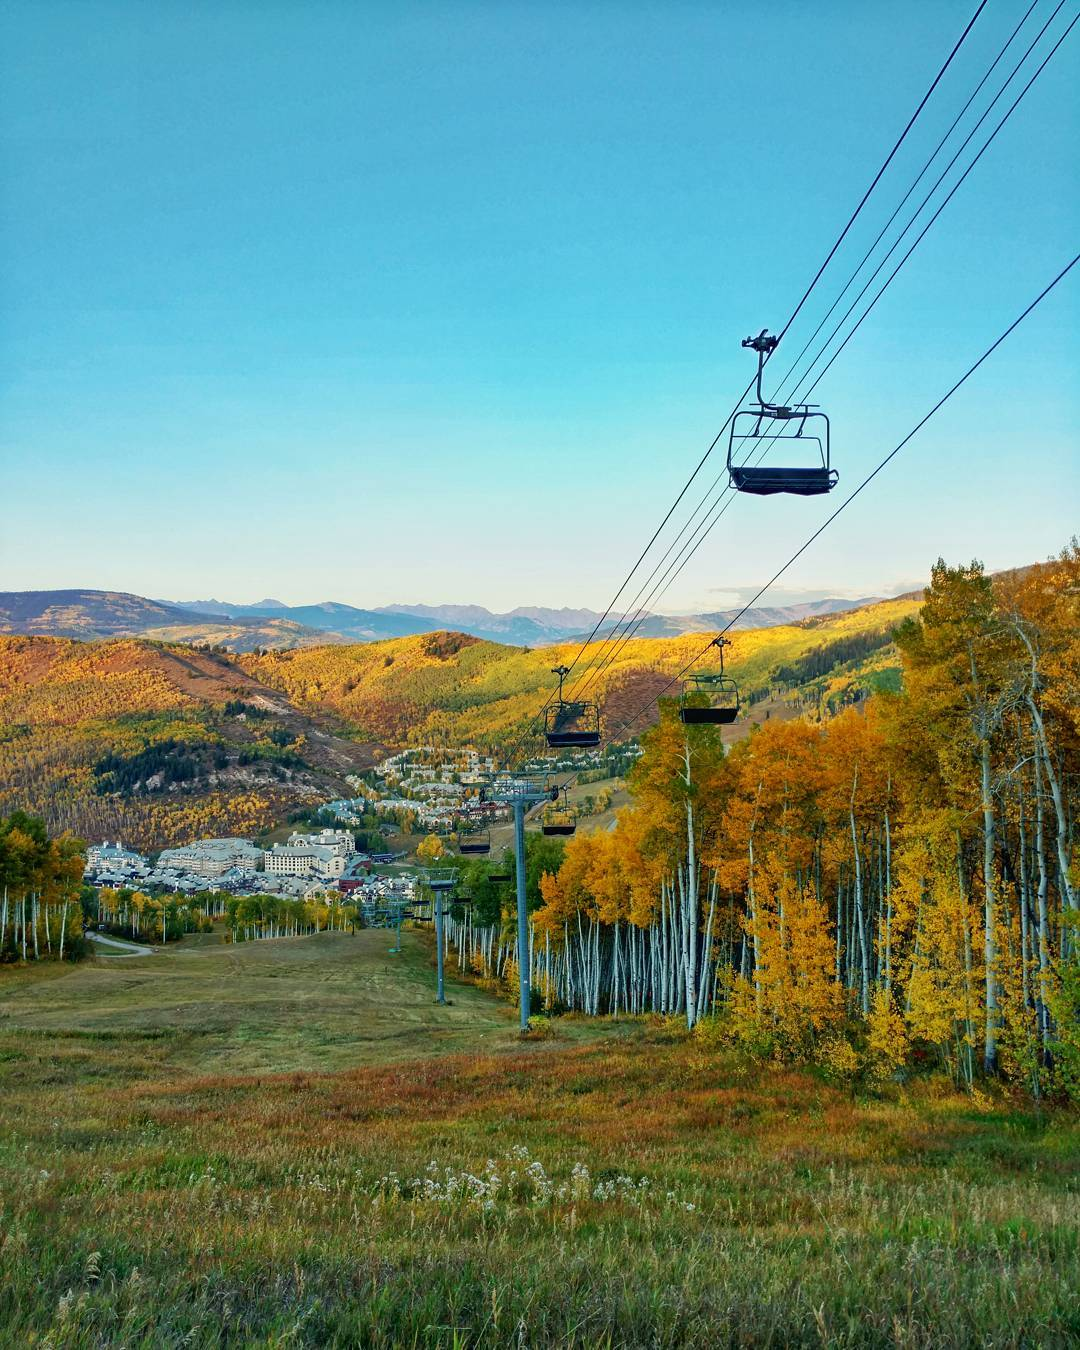 Tonight is Eagle County's year 1 registration! With the leaves turning at @beavercreek our staff and participants are getting antsy for #winter ride days